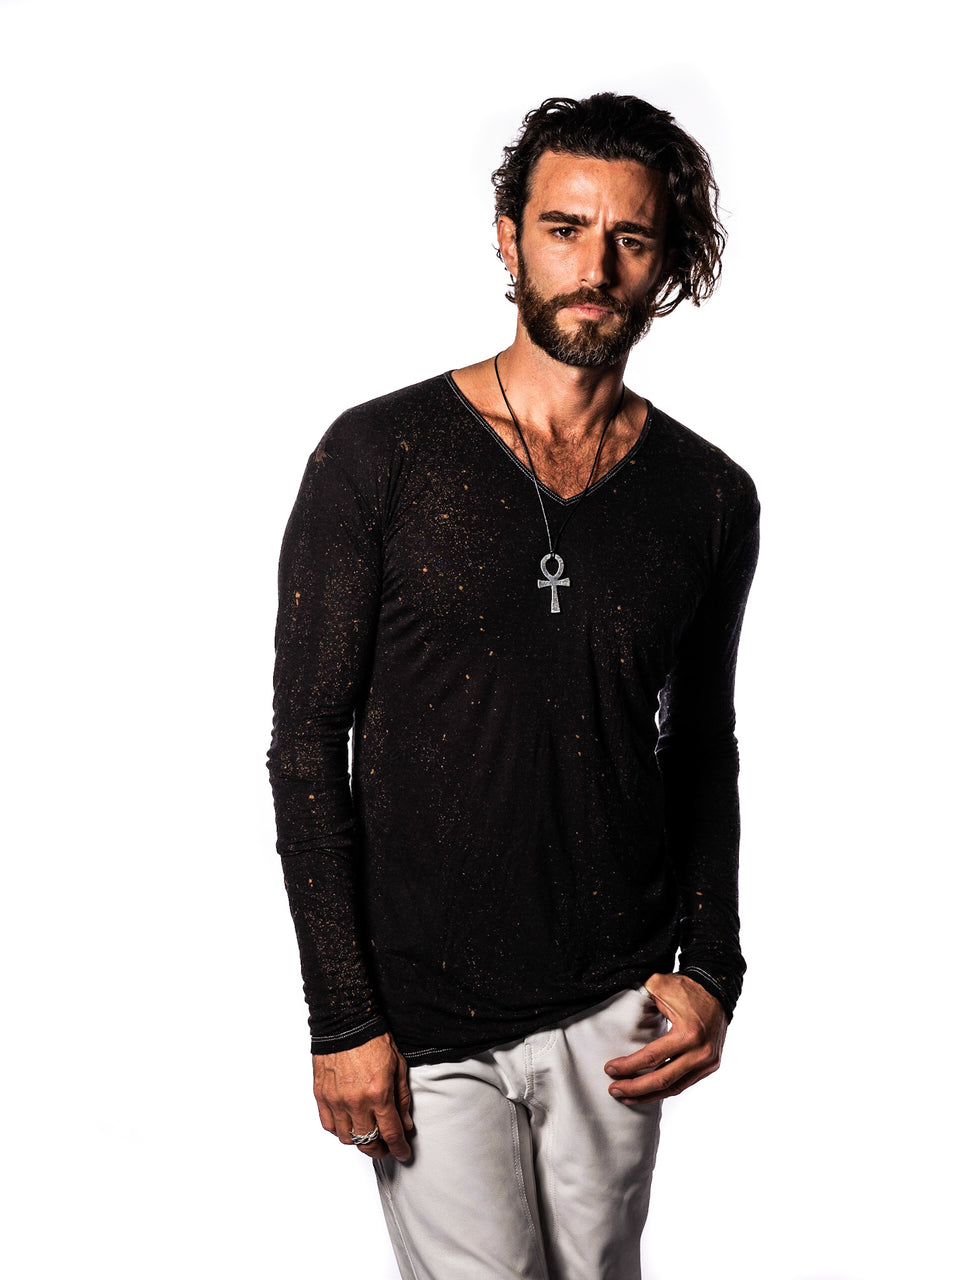 Long Sleeve V-Neck Shirt - VIntage Cosmic Black